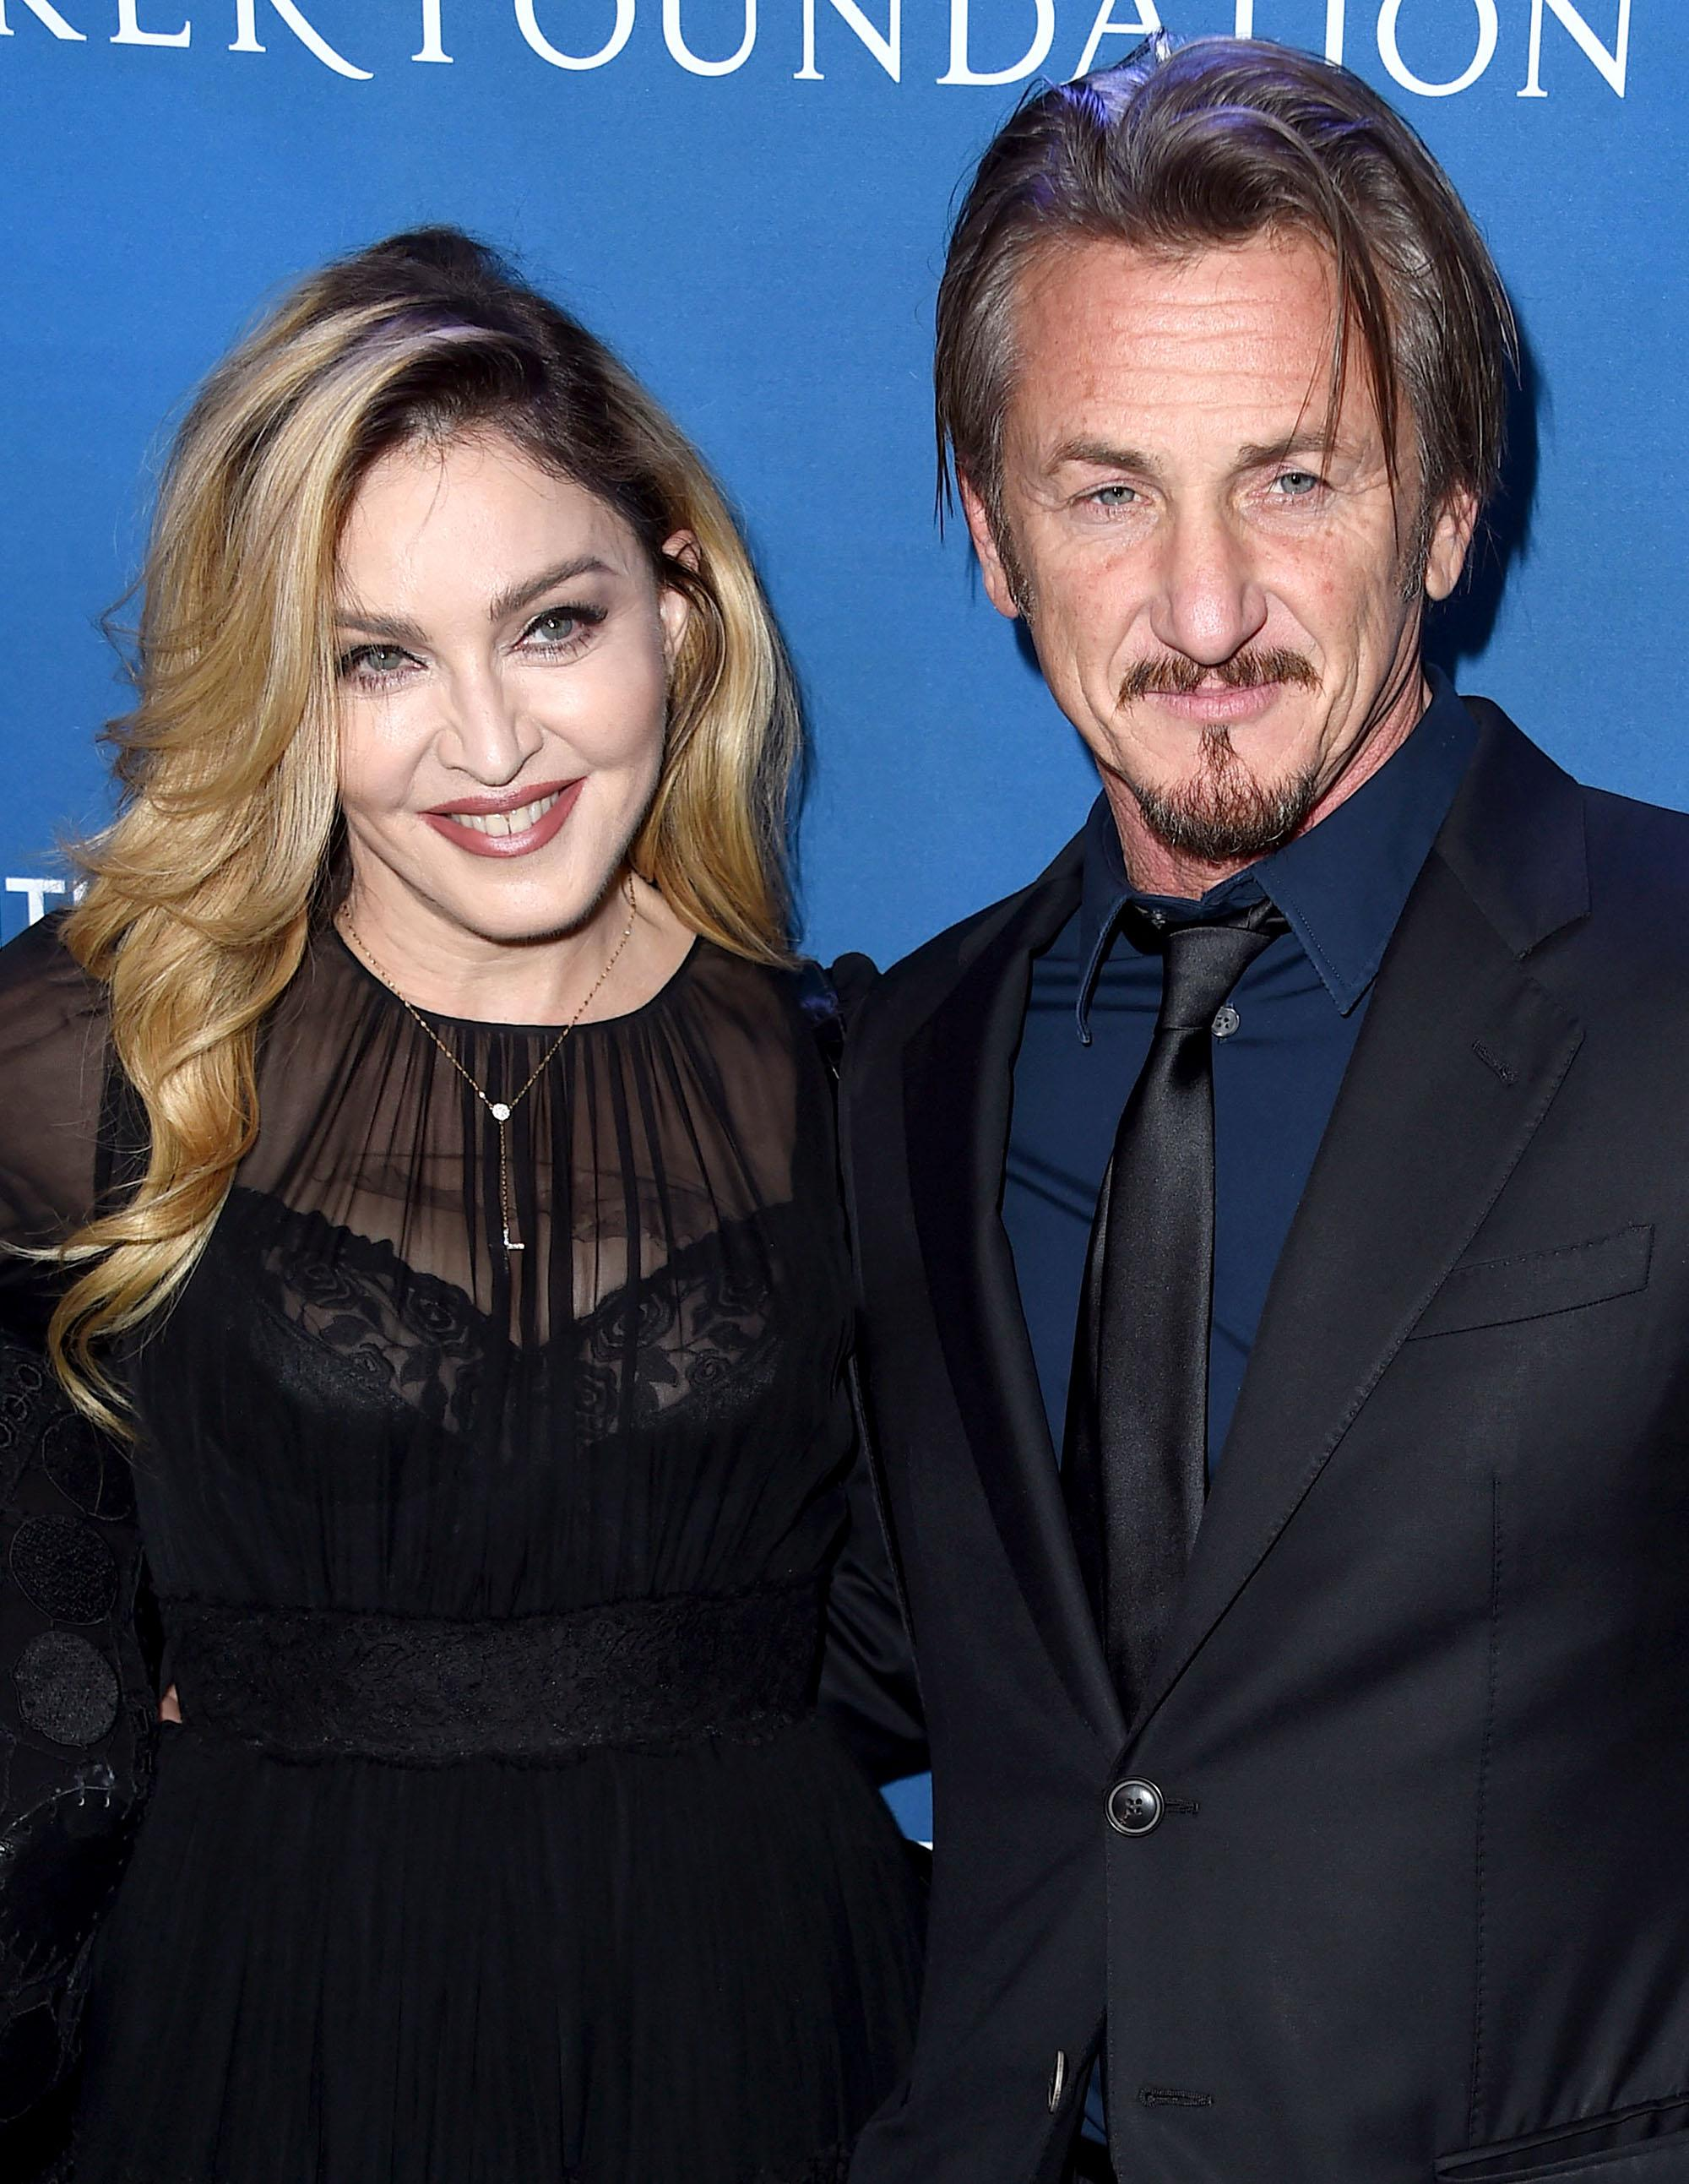 Madonna Offers to Remarry Sean Penn for $150,000: 'I'm Still in Love with You'